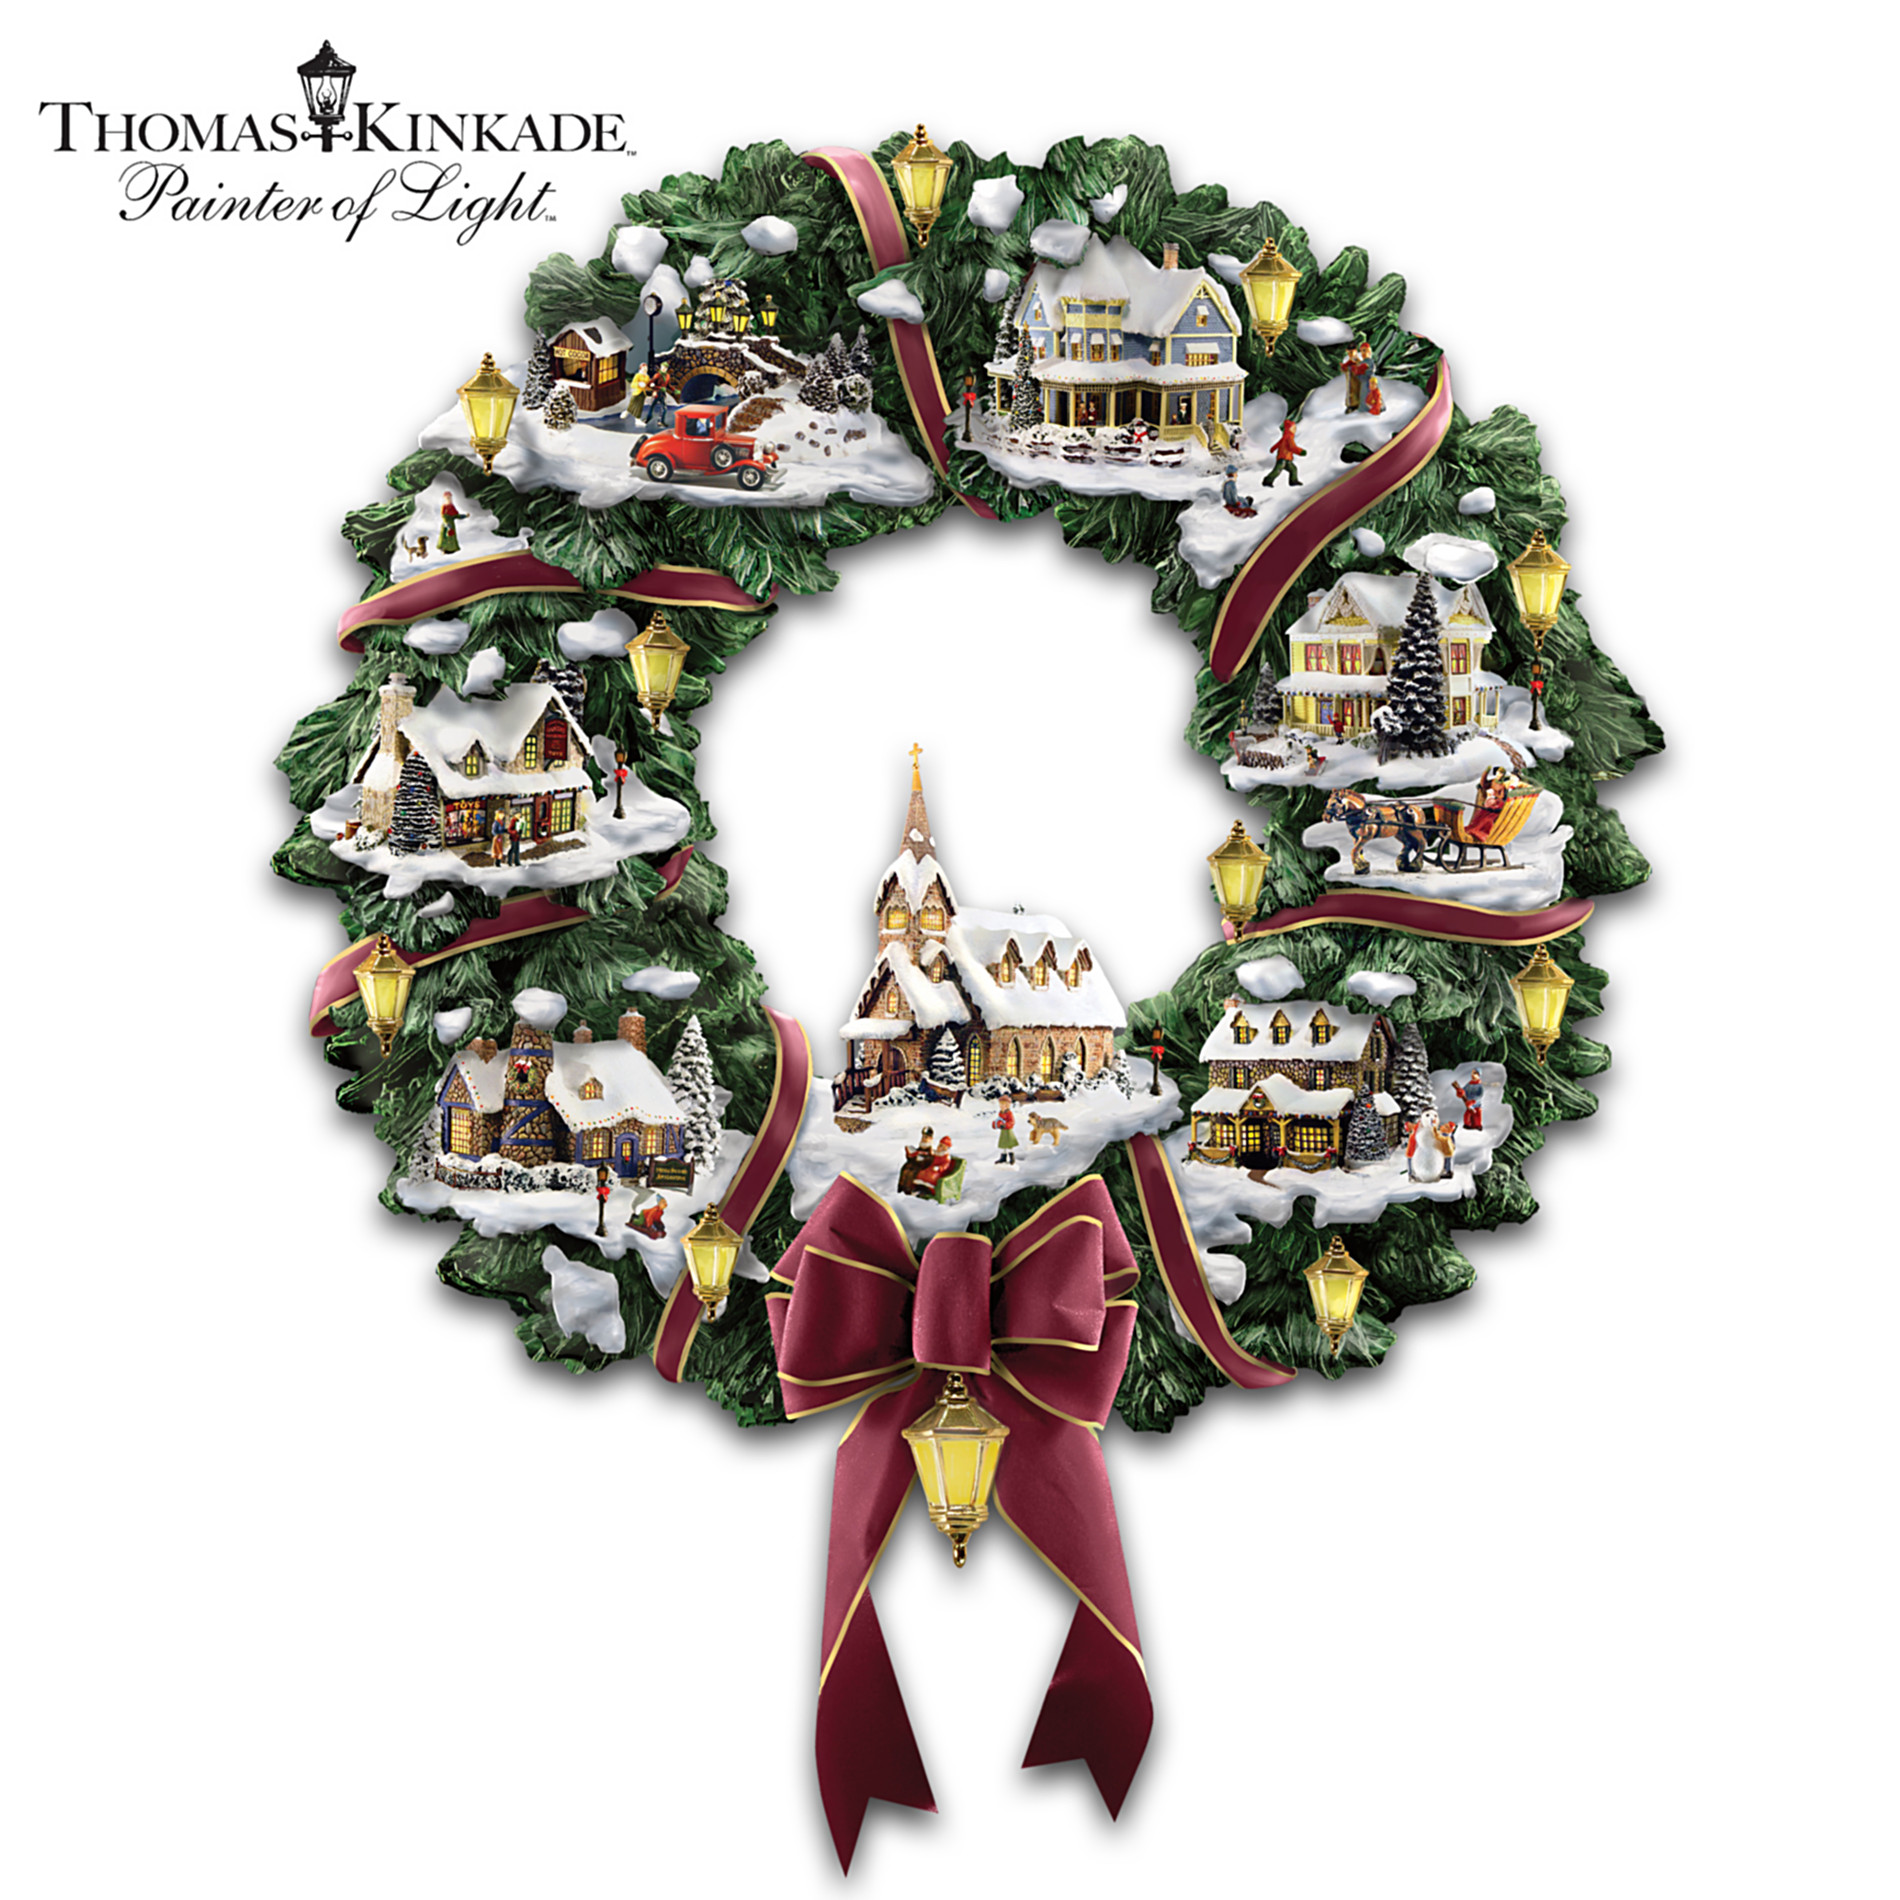 The Hamilton Collection Thomas Kinkade Victorian Christmas Village Wreath at Sears.com